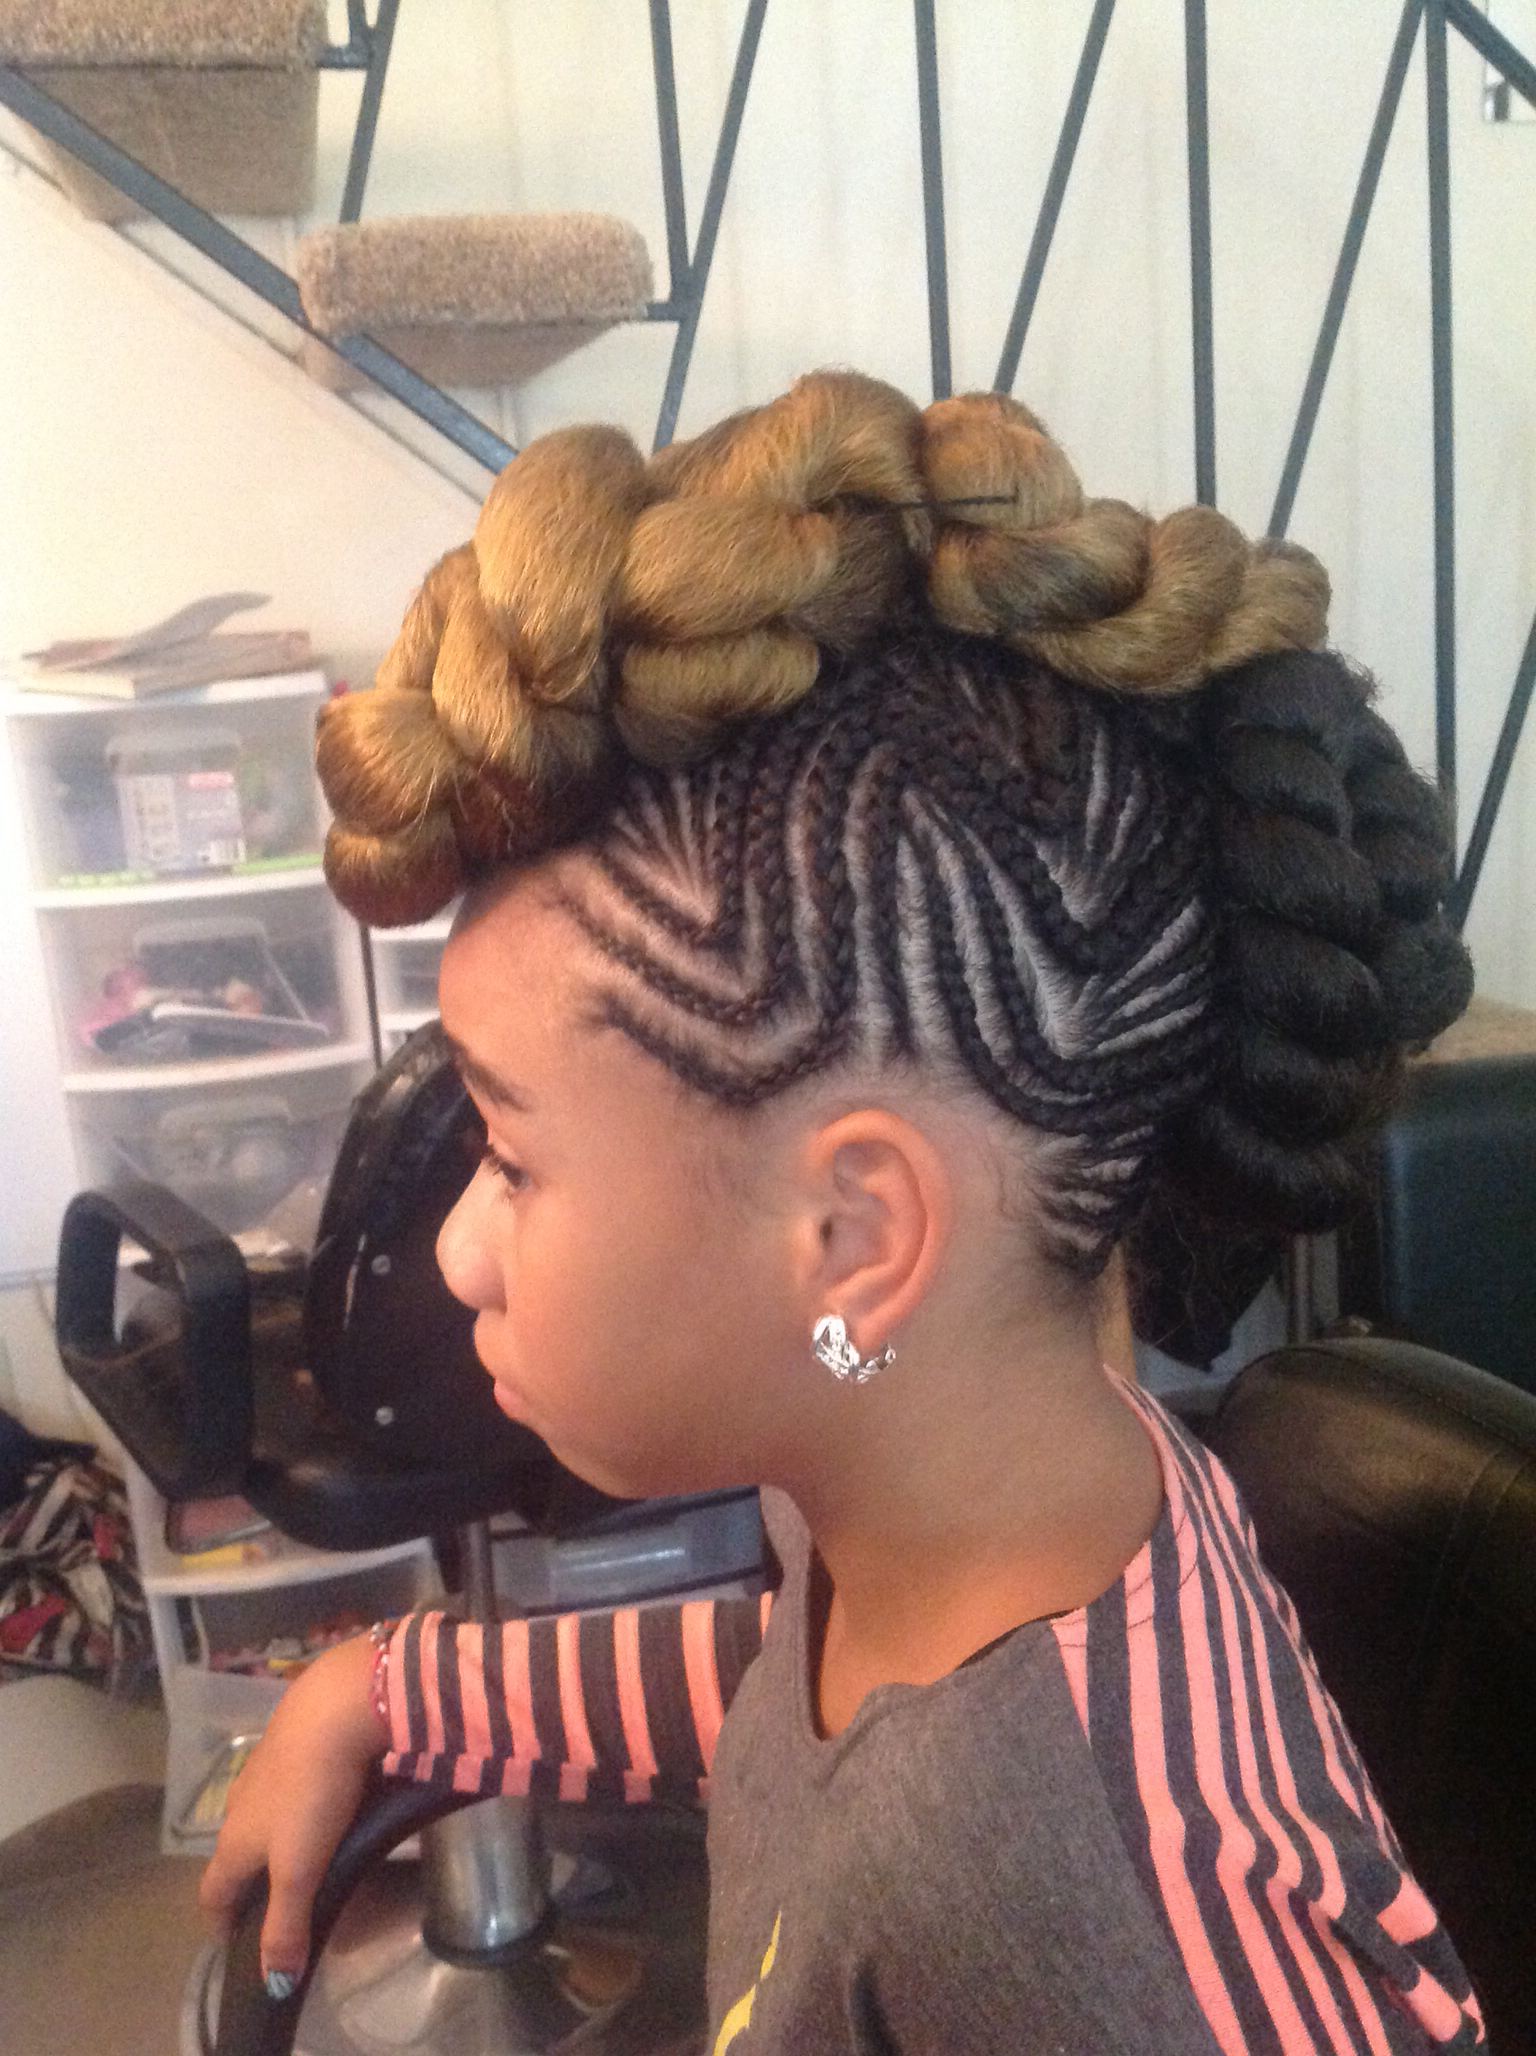 15 Foremost Braided Mohawk Hairstyles – Mohawk With Braids Intended For Best And Newest Full Braided Mohawk Hairstyles (View 4 of 20)